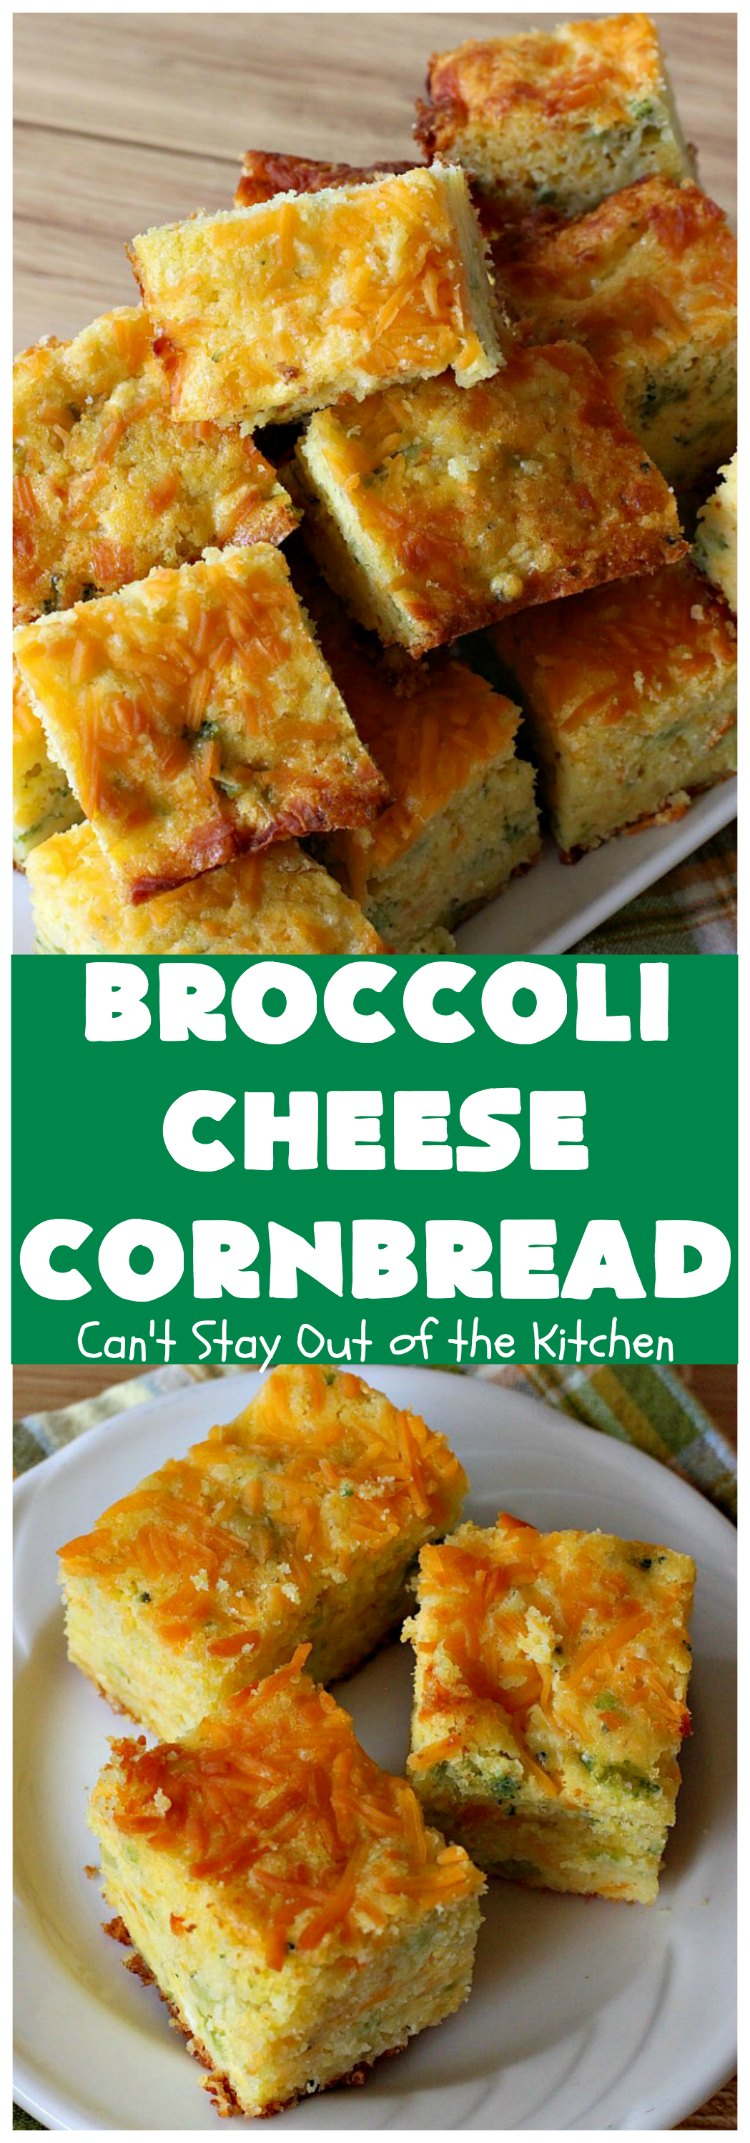 Broccoli Cheese Cornbread | Can't Stay Out of the Kitchen